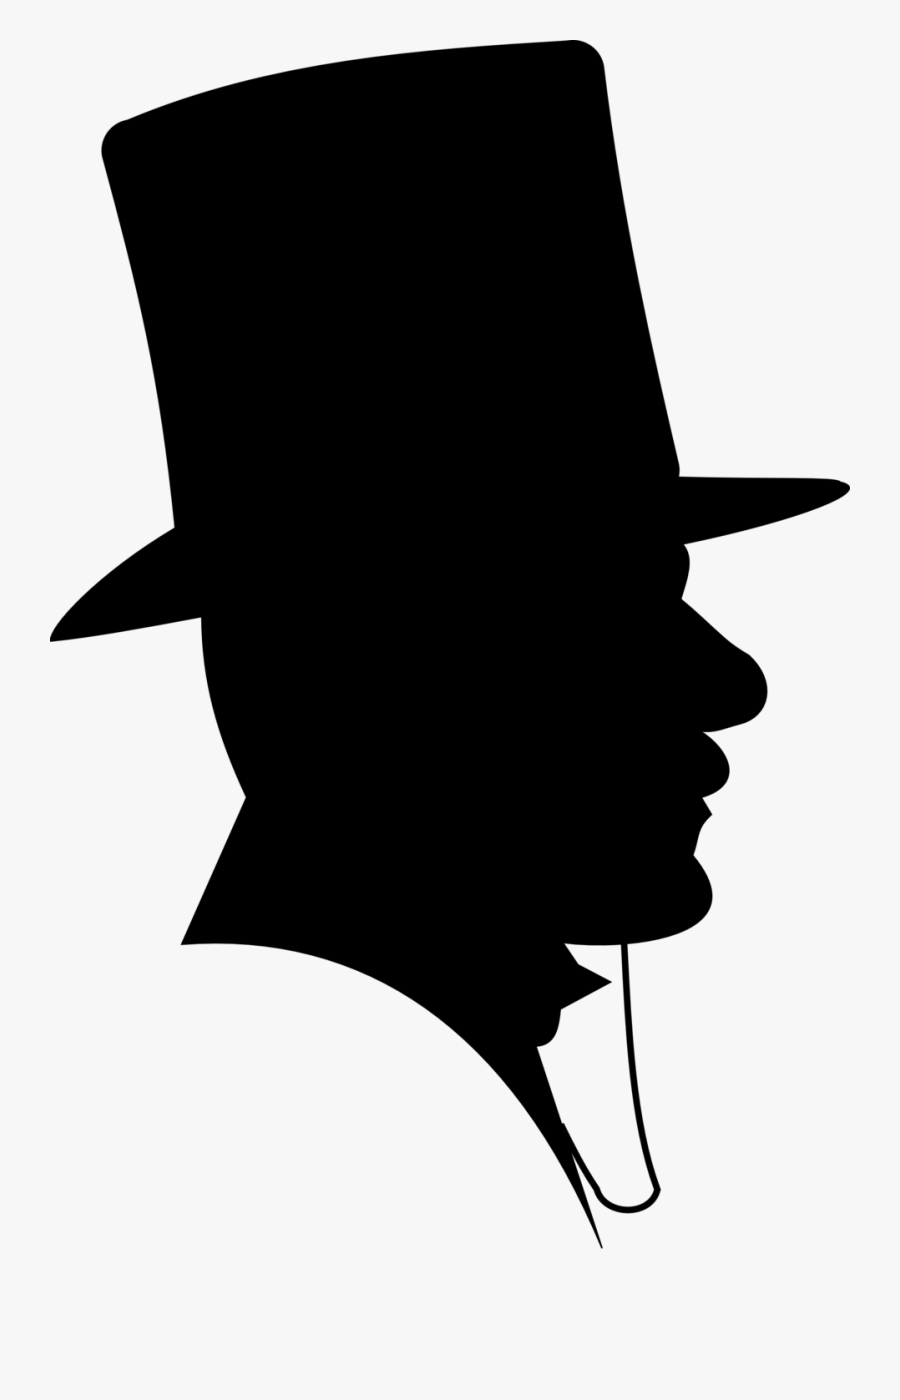 Summer Hat Clipart Fashion Trends - Man In Top Hat Silhouette, Transparent Clipart